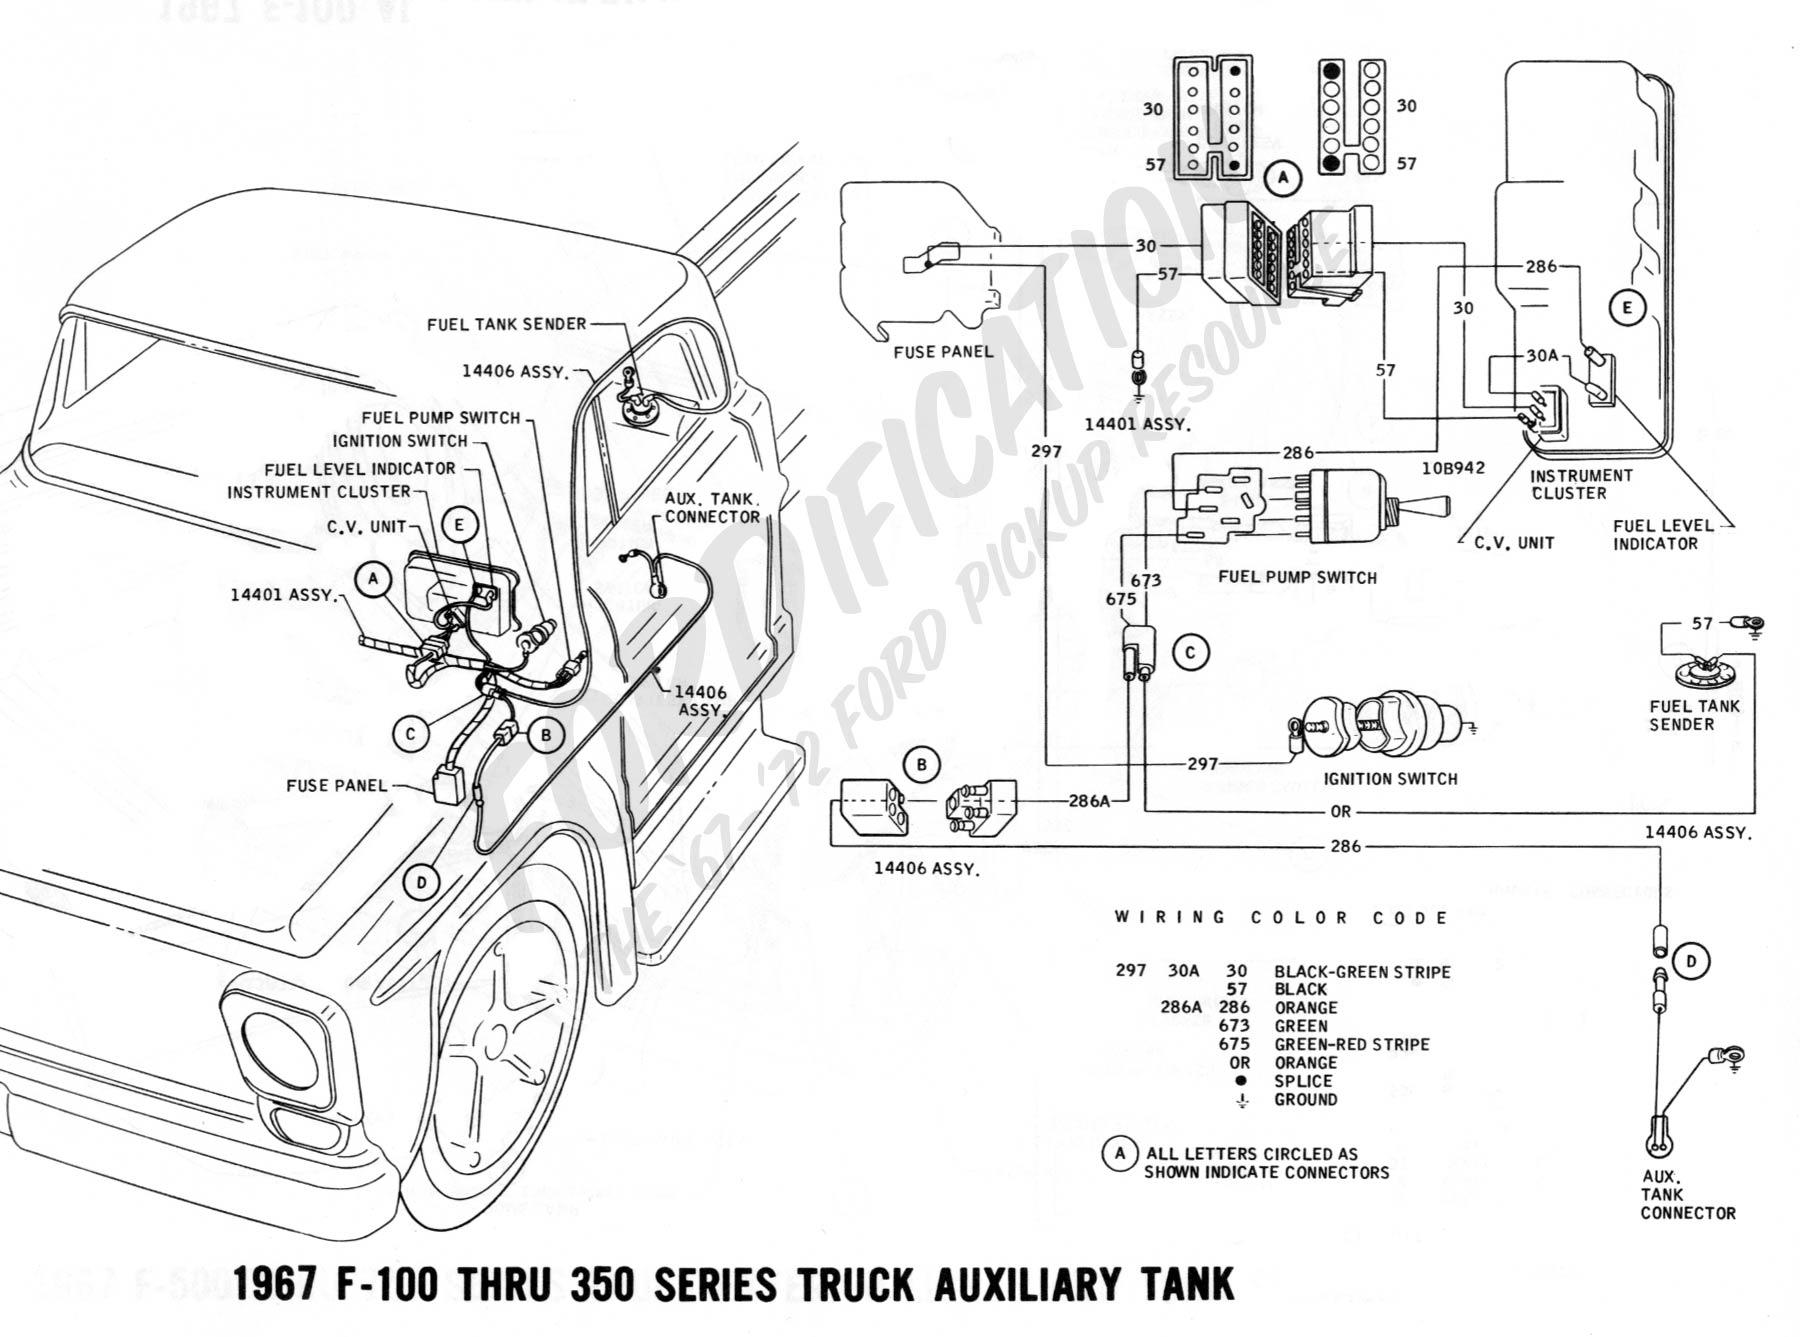 wiring 1967auxtank ford truck technical drawings and schematics section h wiring  at soozxer.org